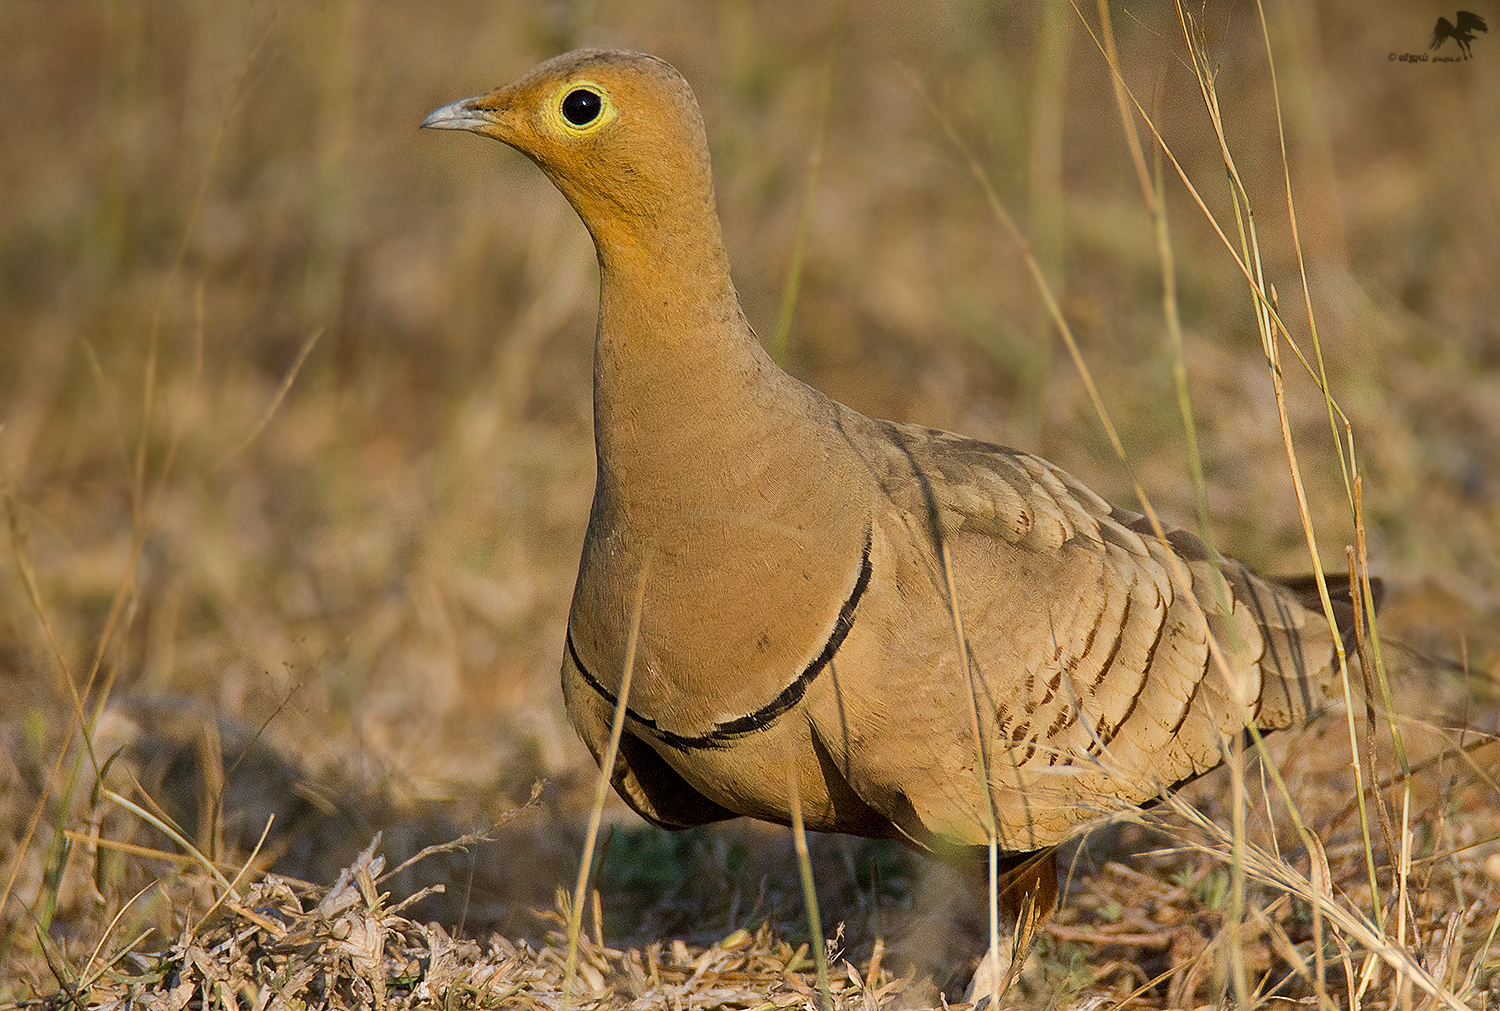 Chestnut-bellied sandgrouse (Male) கல் கவுதாரி